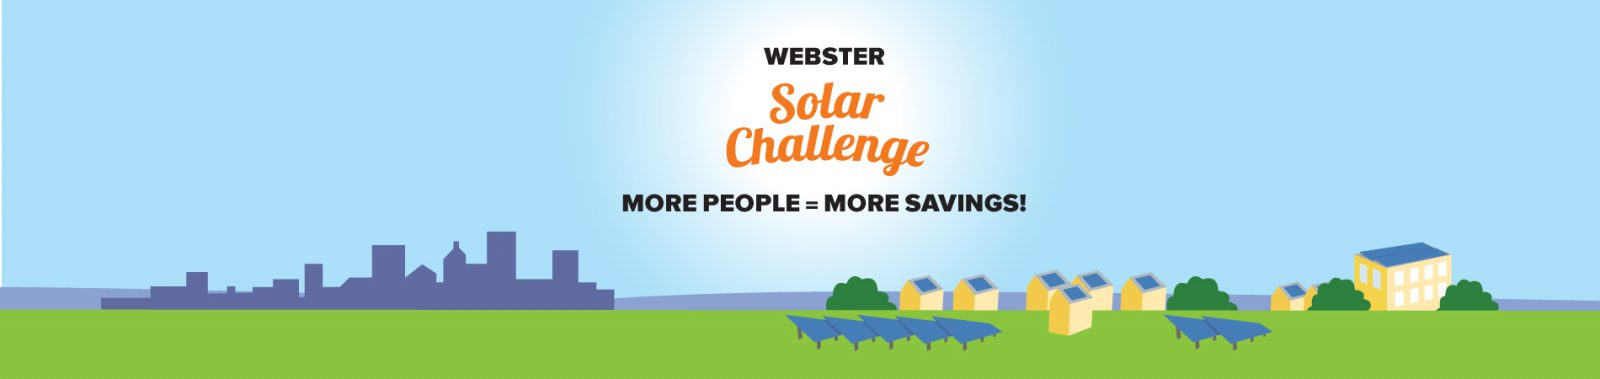 webster solar challenge hero banner